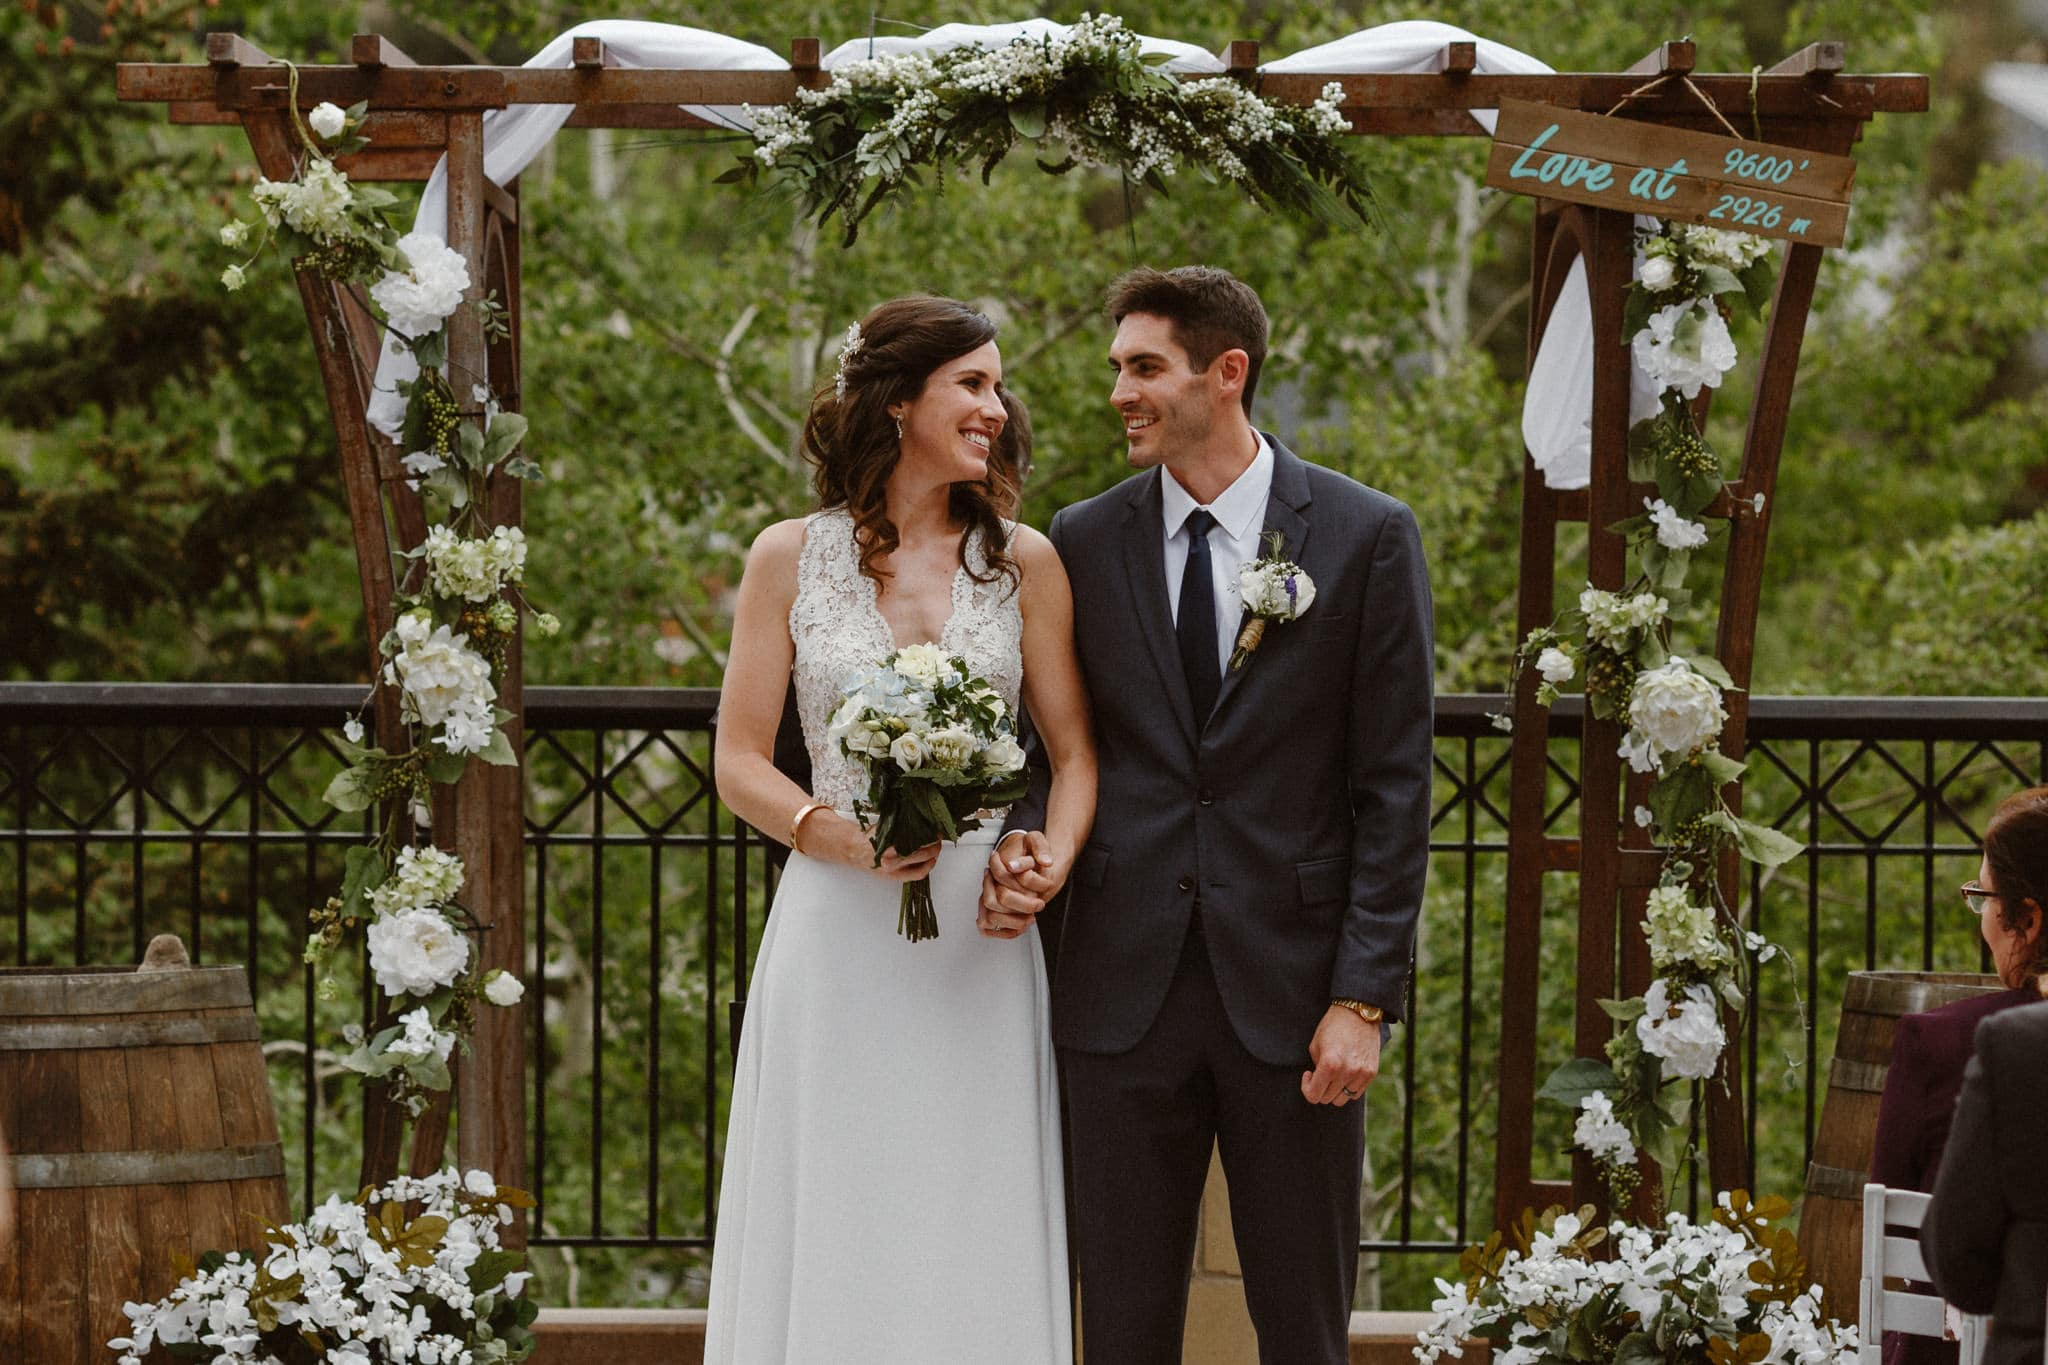 Main Street Station wedding ceremony, Breckenridge Colorado ski resort wedding photographer